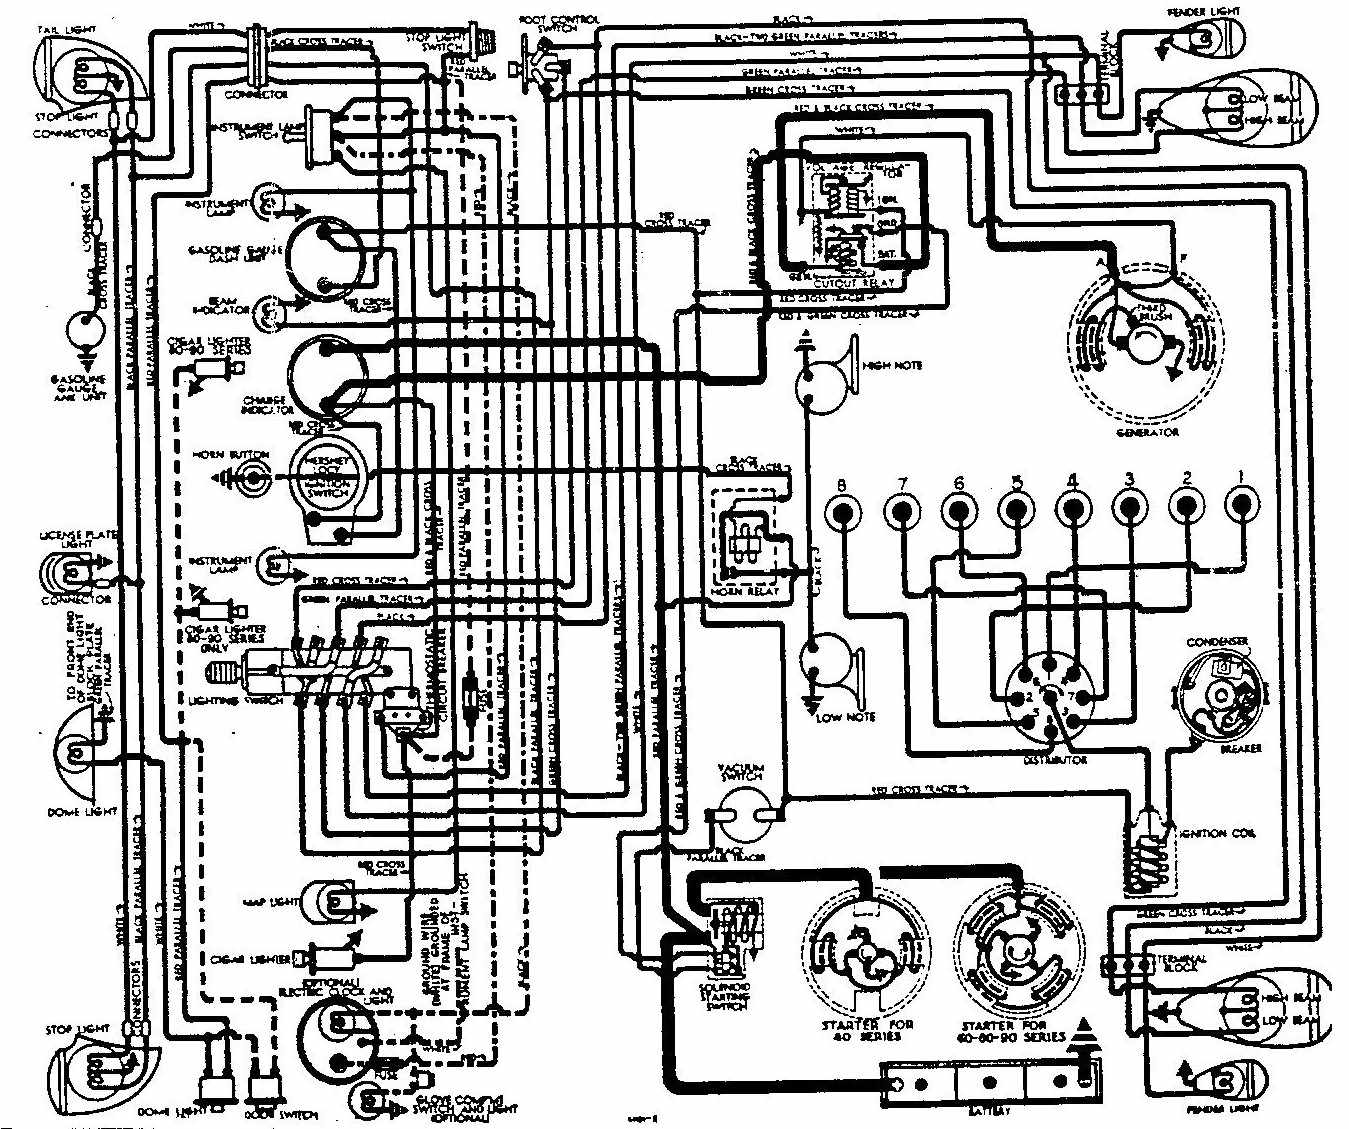 Gmc Fuel Pump Wiring Diagrams Gm Vehicle Pigtails 2000 Sonoma Html Autos Post Diagram